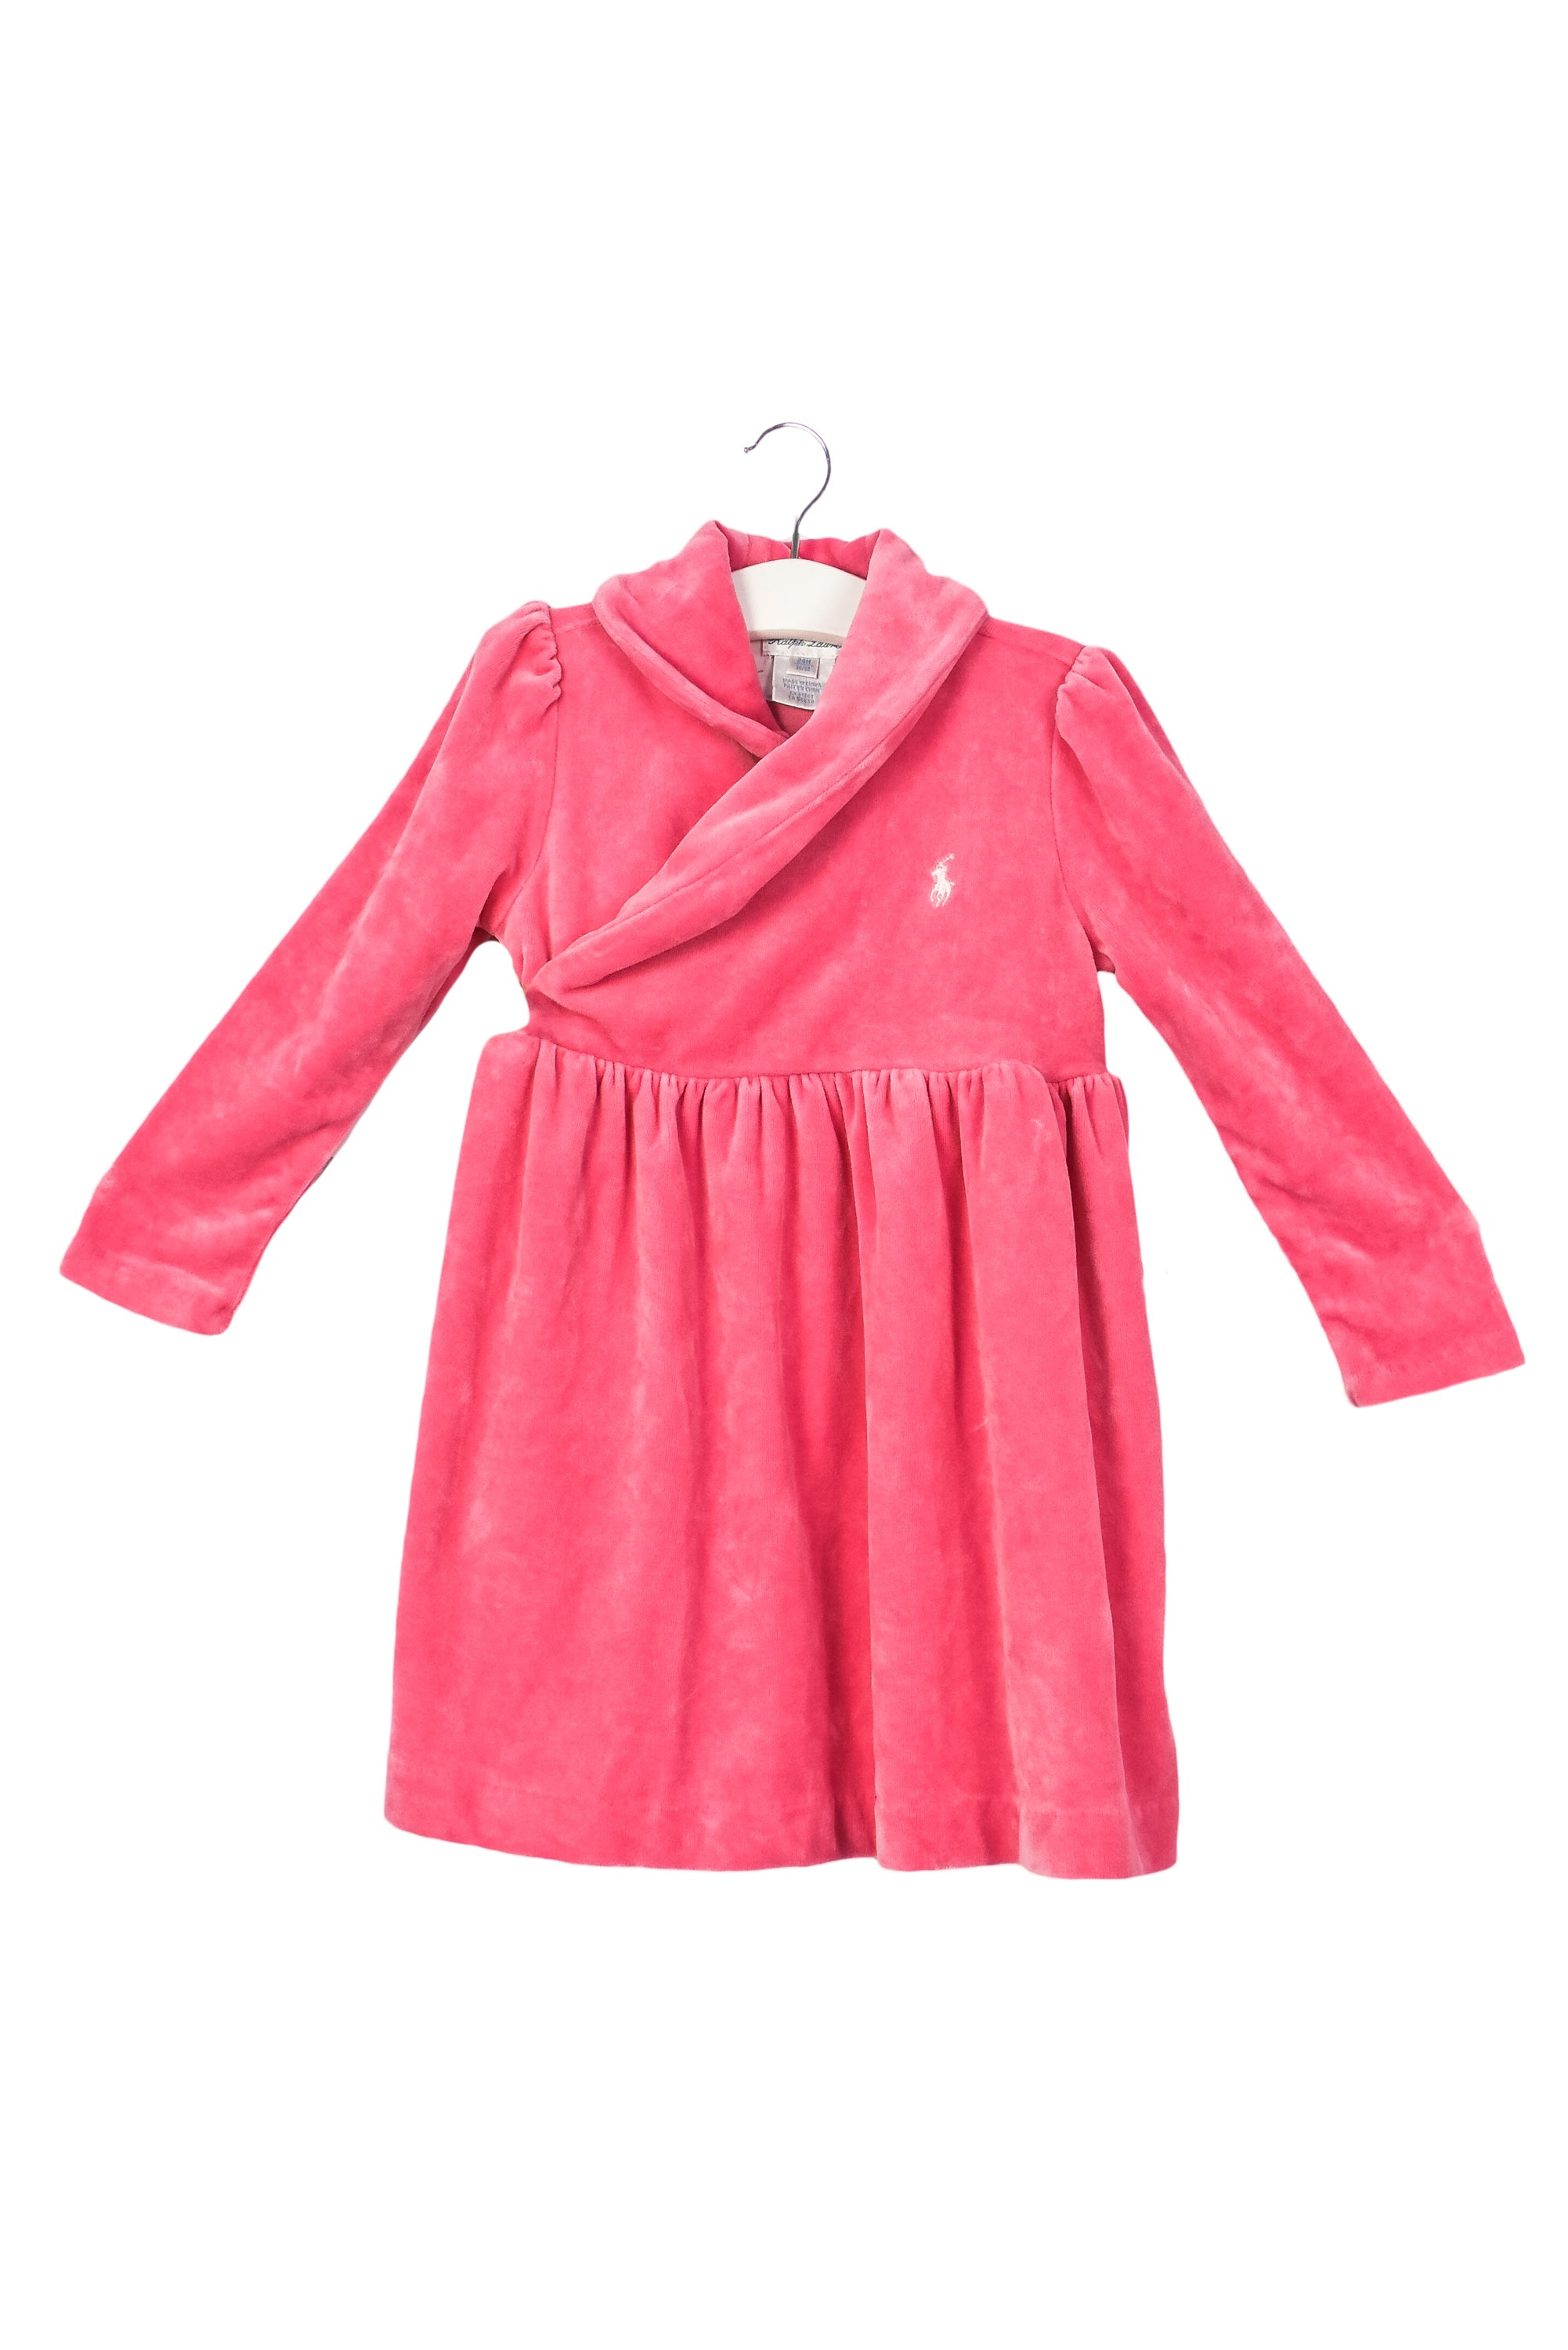 10037389 Ralph Lauren Baby~Dress 24M at Retykle